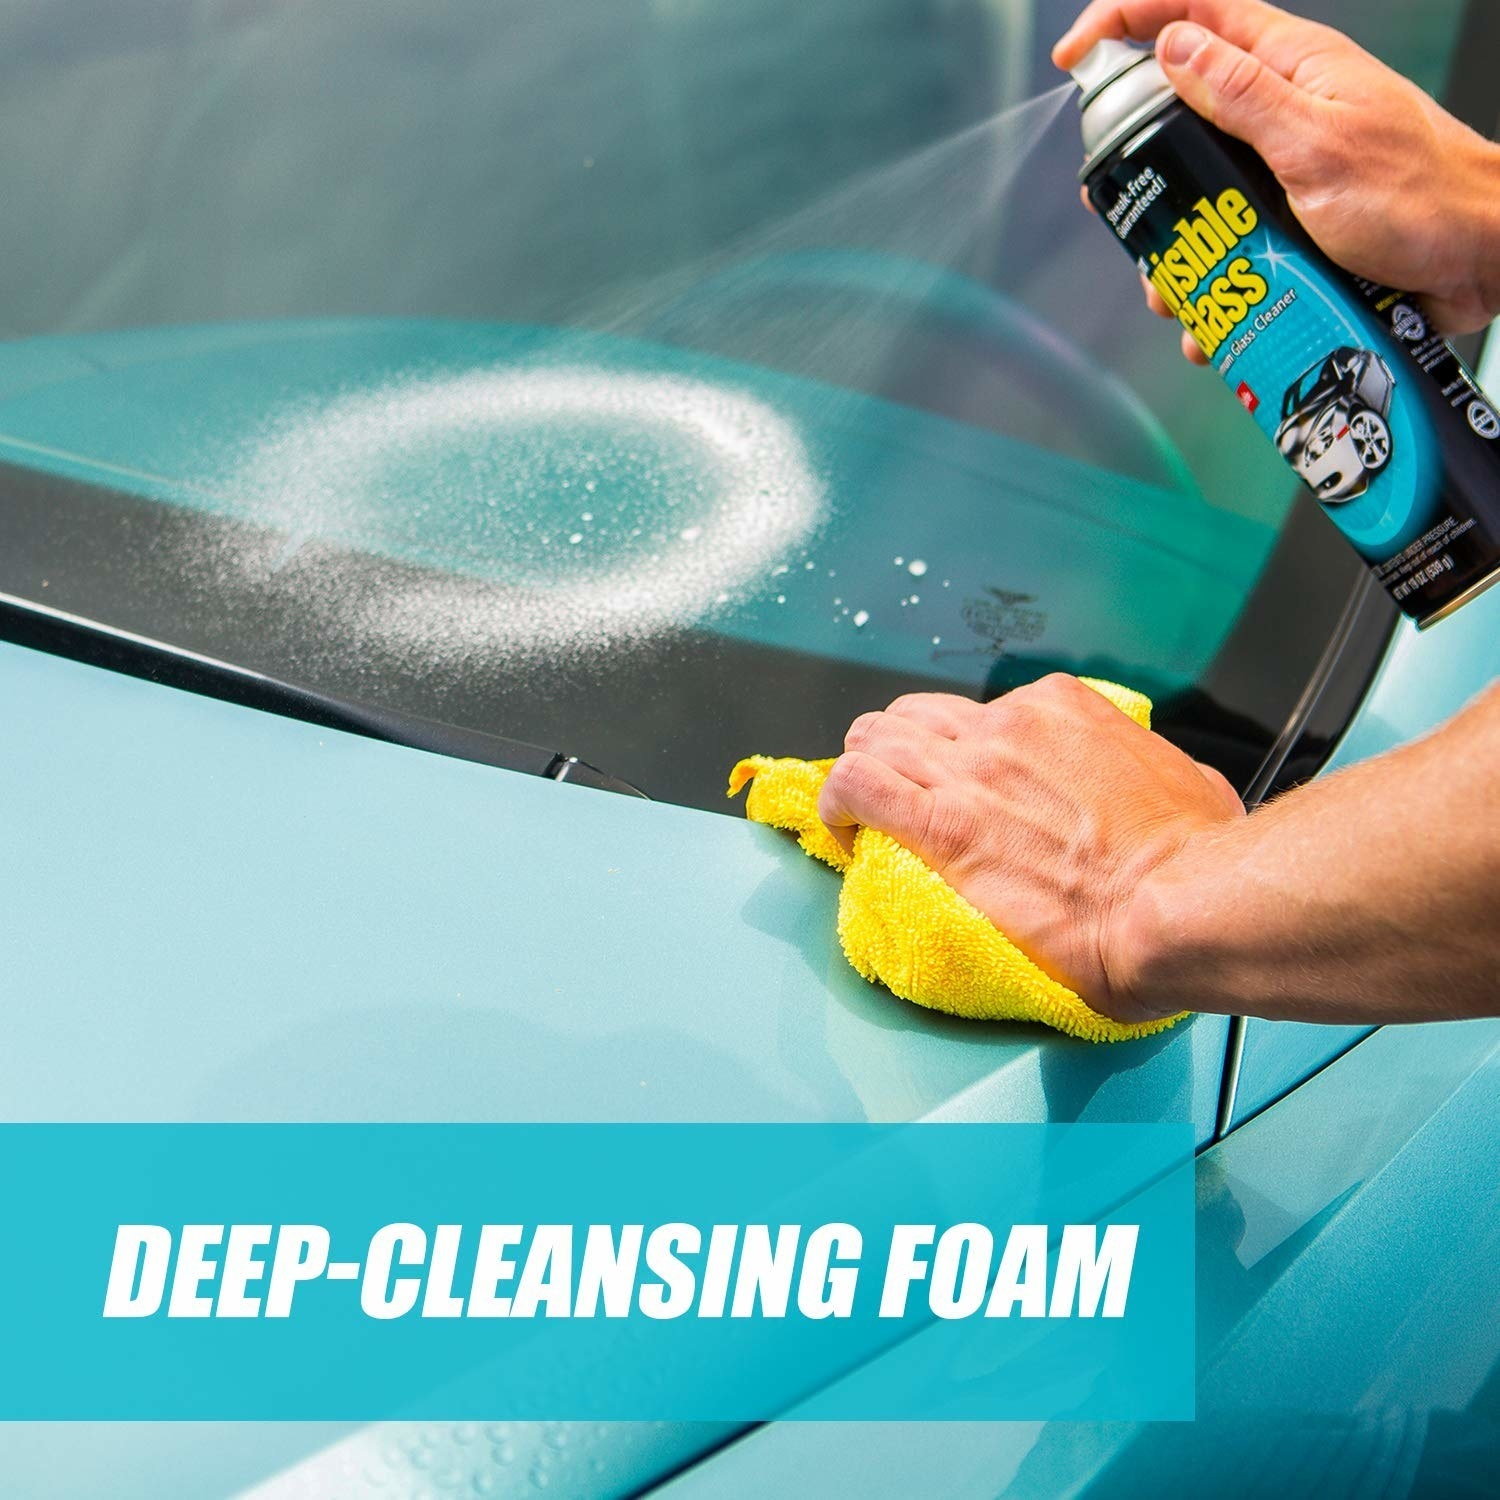 spraying the cleanser on a windshield